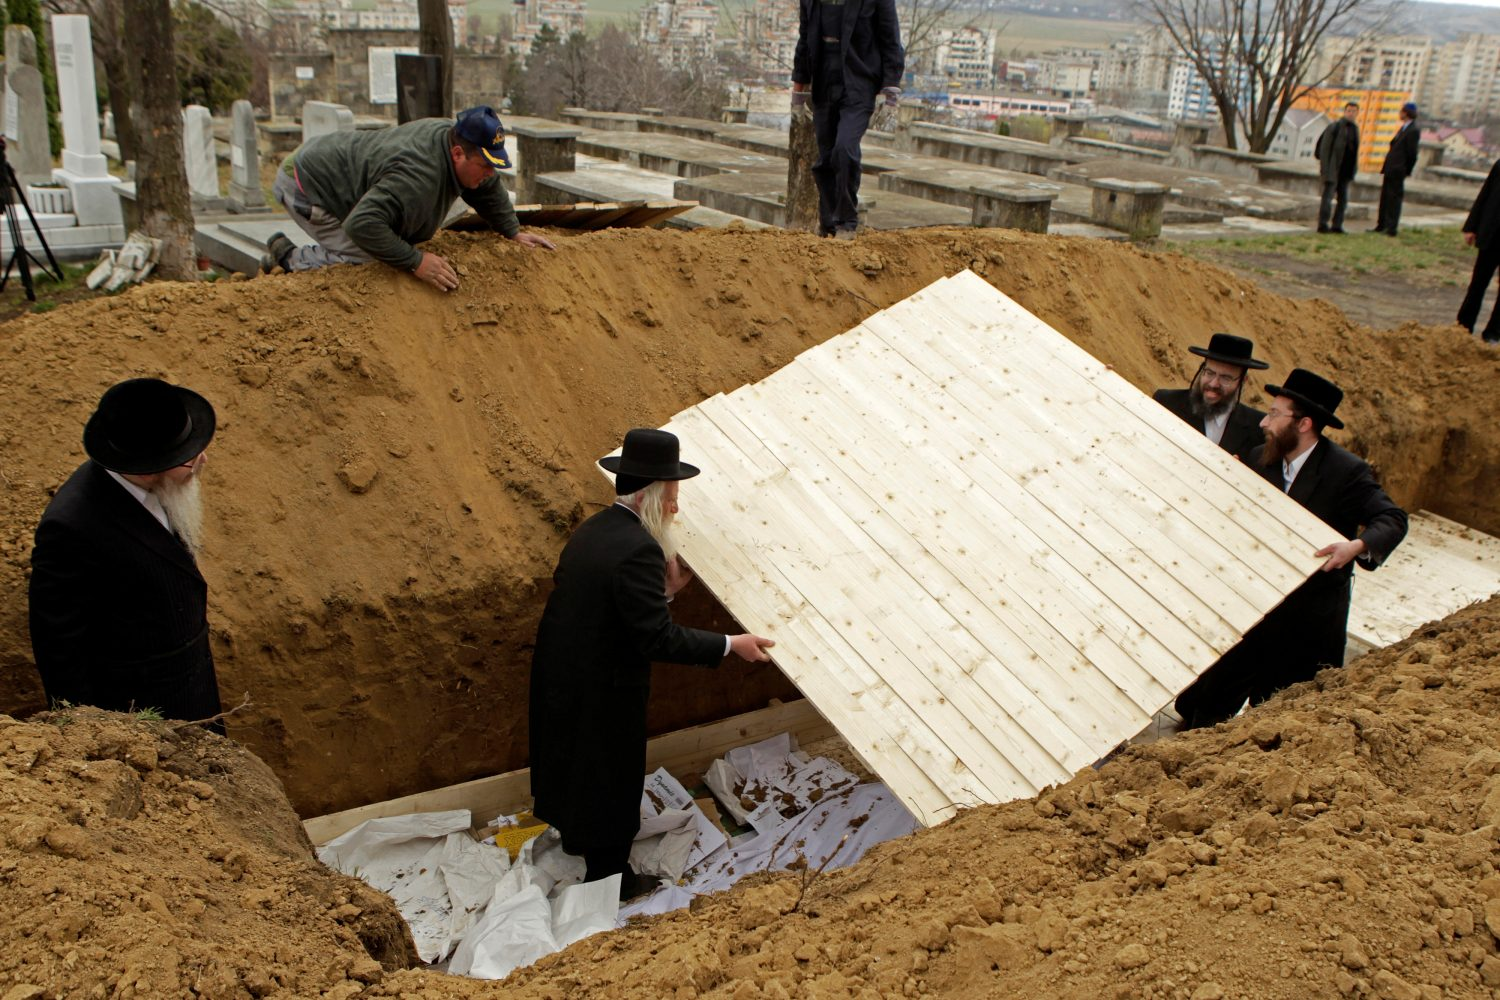 FILE PHOTO: Rabbis from England and the United States prepare a grave to bury the remains of dozens of Jews in a cemetery in Iasi, Romania, April 4, 2011. REUTERS/Bogdan Cristel/File Photo